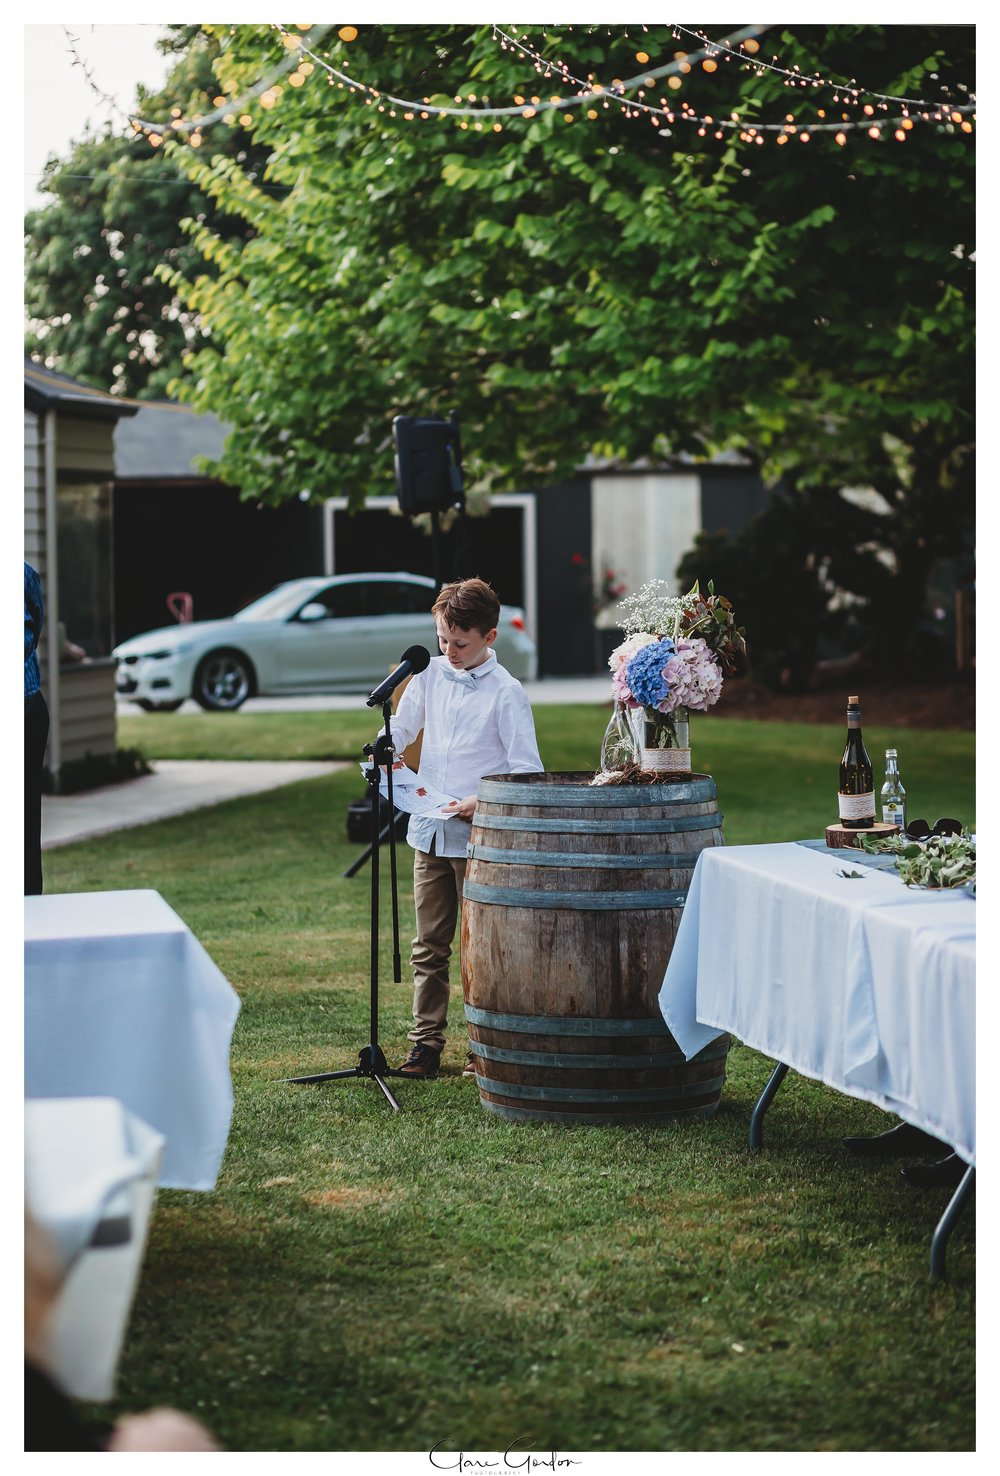 Hamilton-wedding-photographer-Waikato-Couple-Newzealand-weddnig-photographer (109).jpg